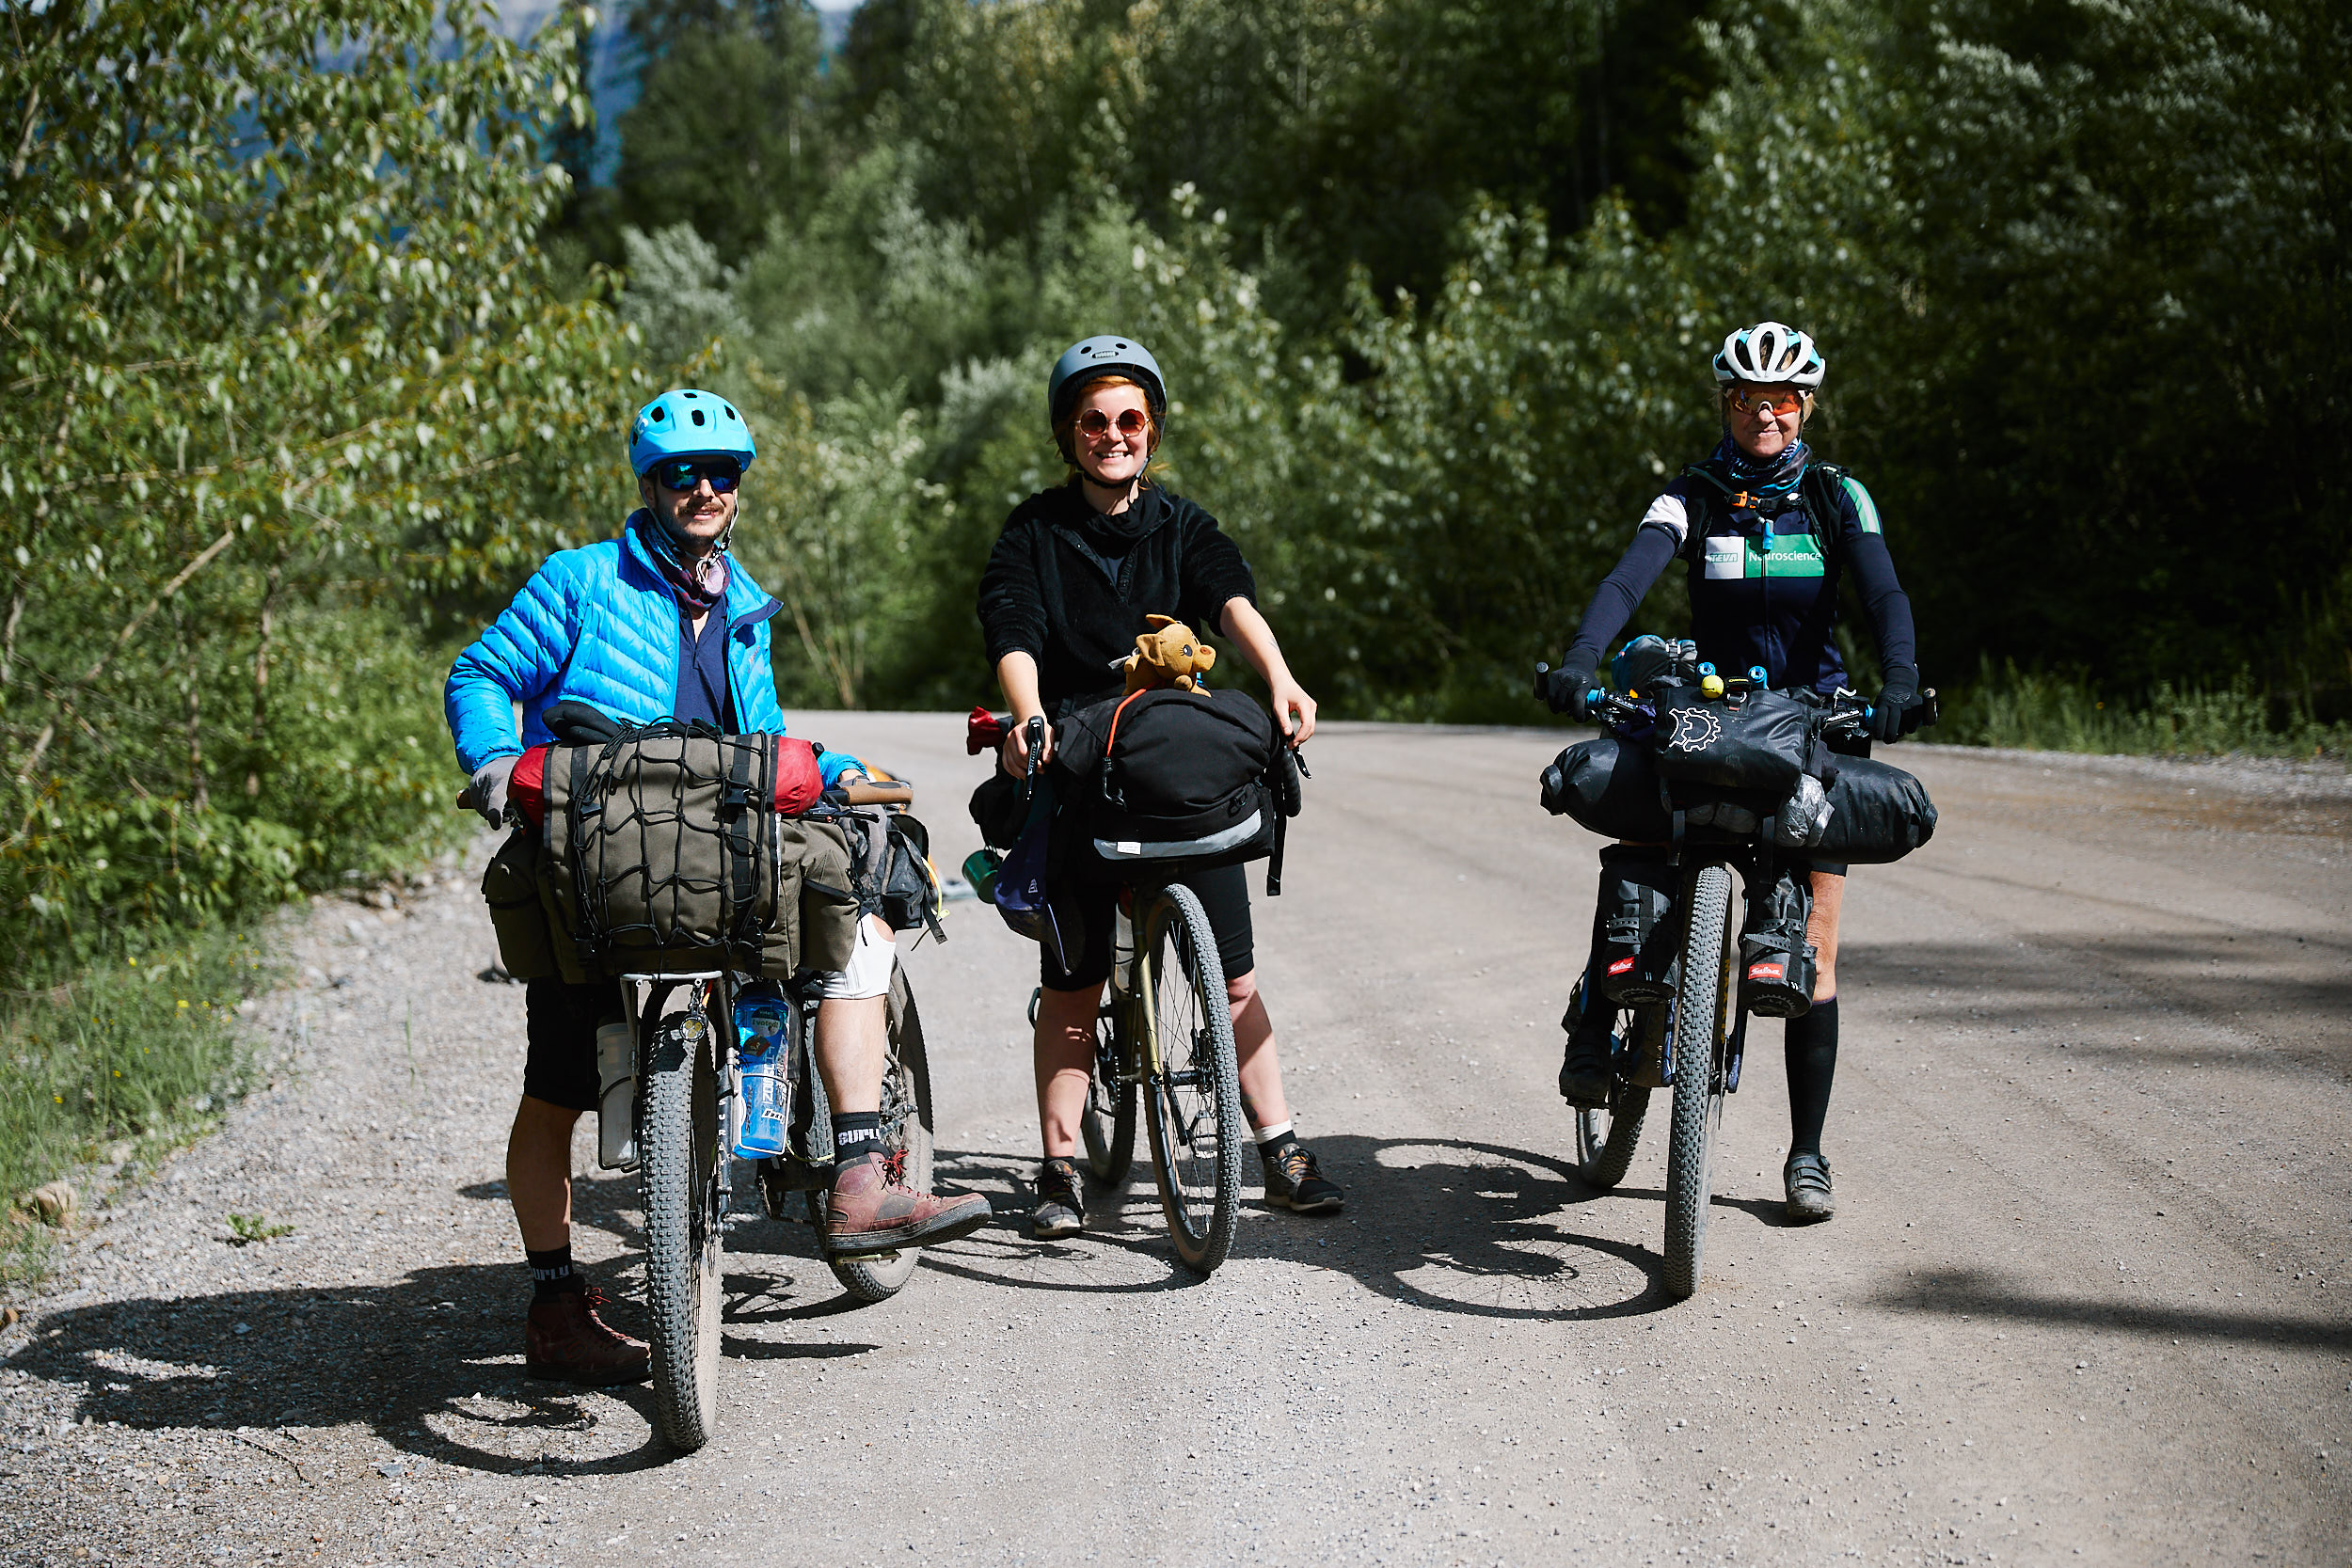 The next morning we ran into one of the riders doing the entire 4400km of the Great Divide Trail as part of the 'Tour Divide' race. Her name is Grace and she finished on July 19th!